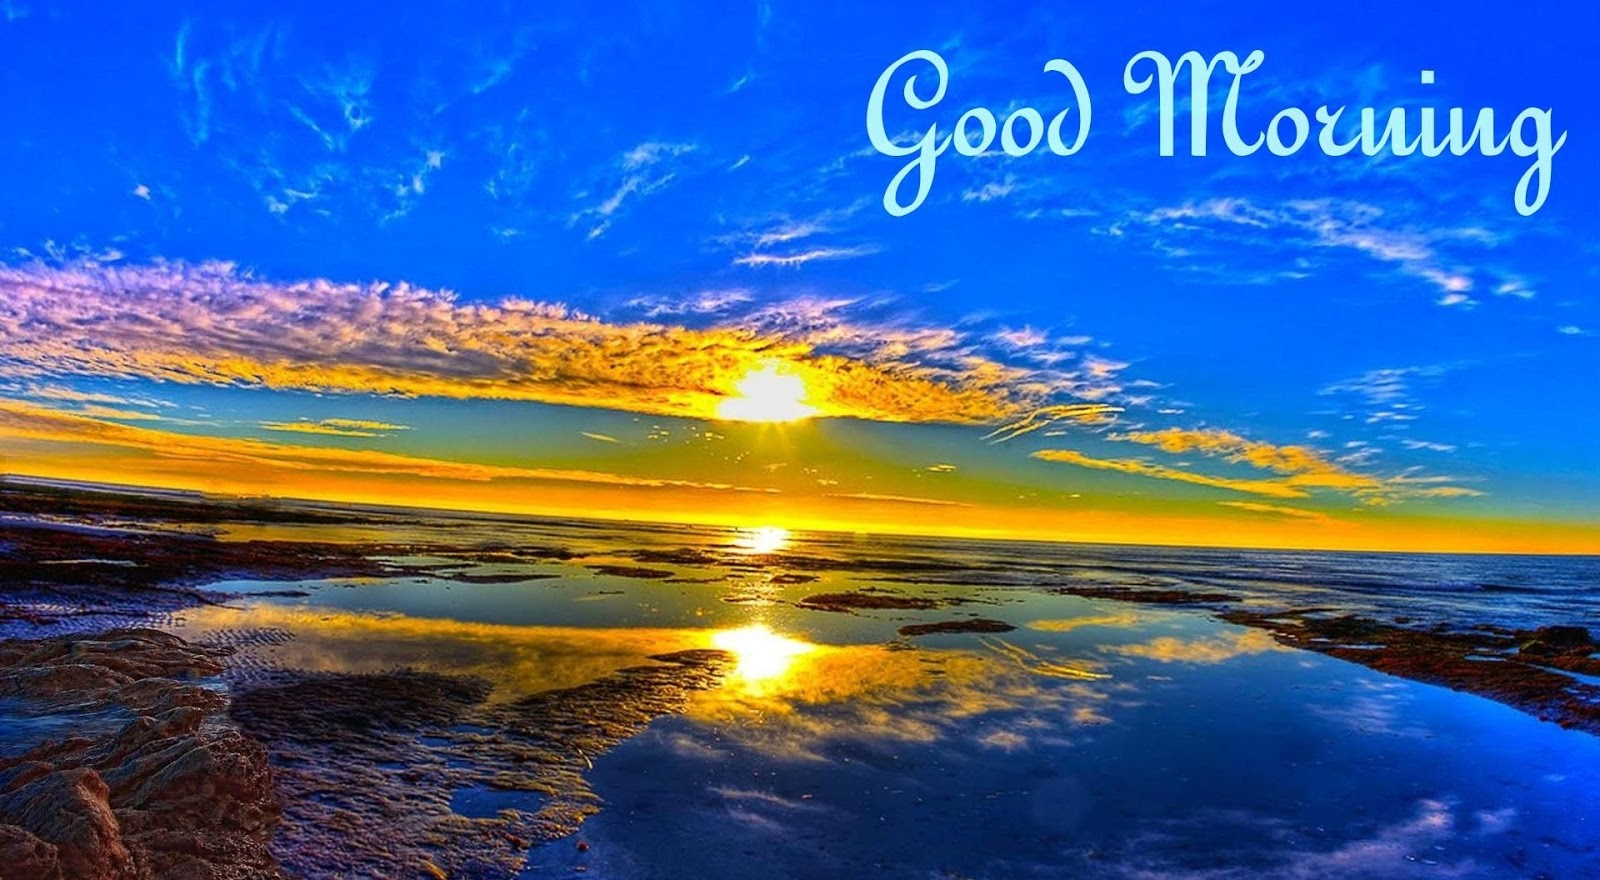 Best Good Morning HD Wallpapers, Download Good Morning Desktop Backgrounds,Photos in HD ...